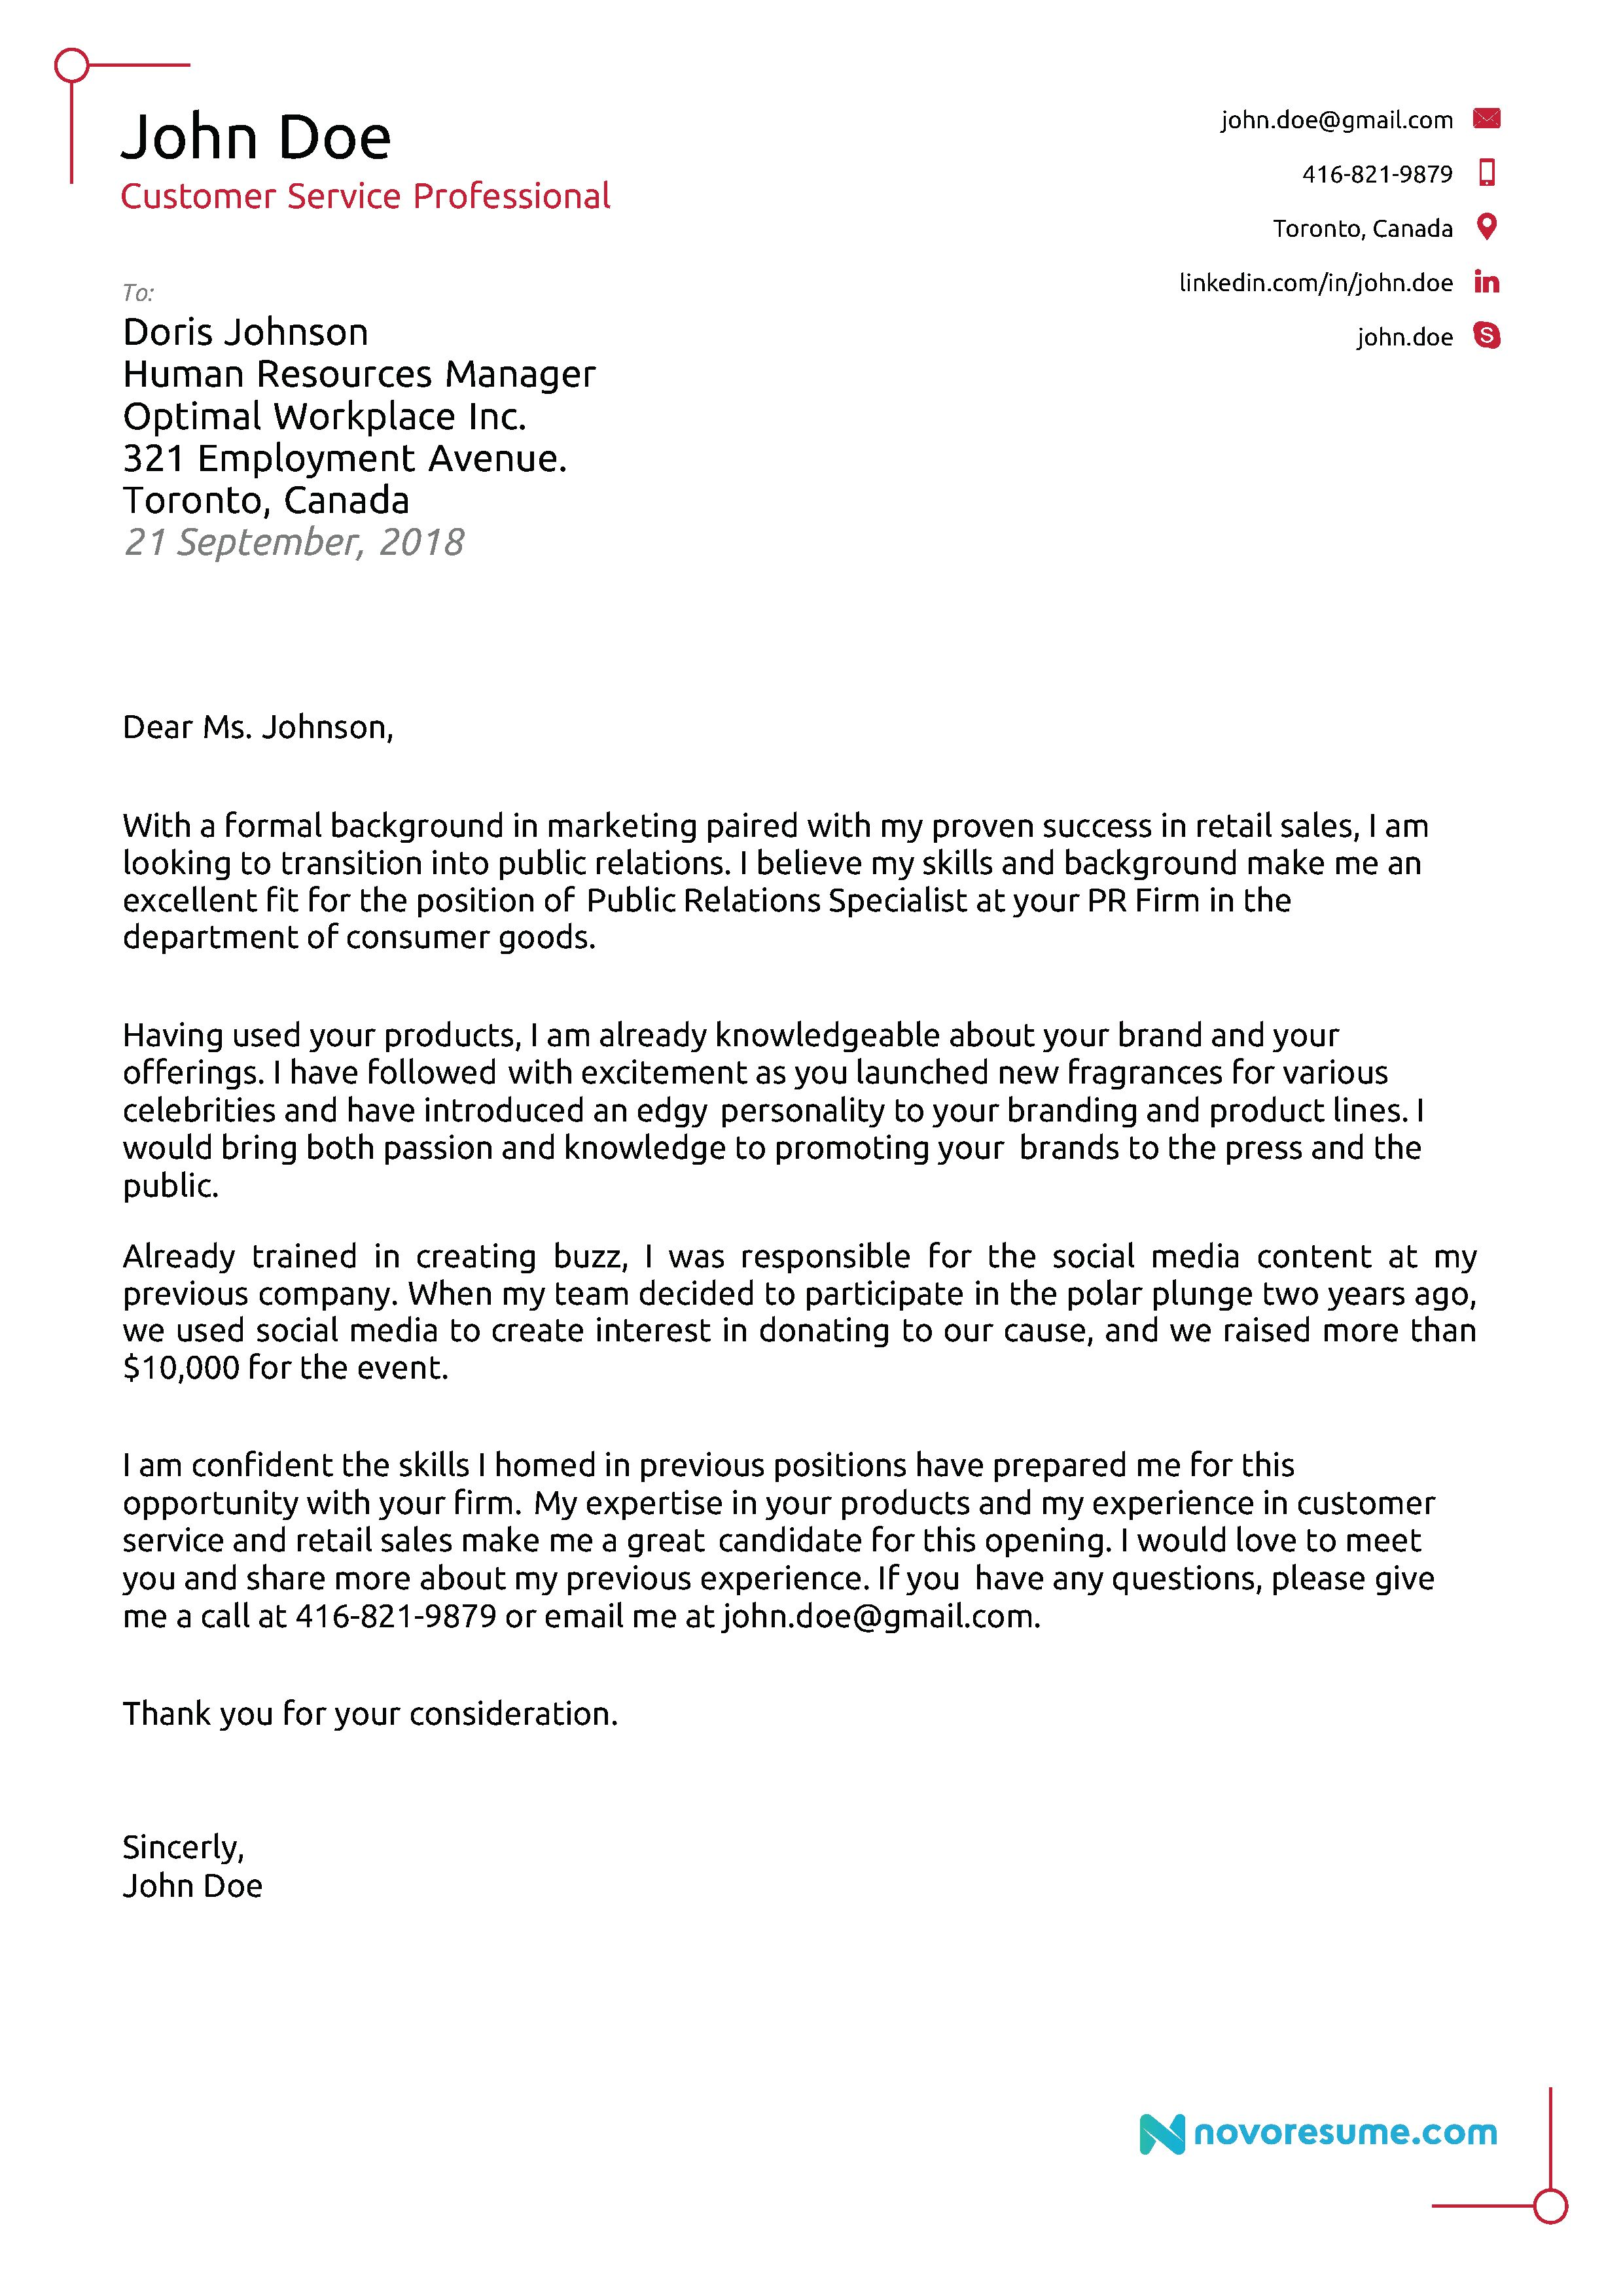 30 Cover Letter Examples For Job Career Change Cover Letter Resume Cover Letter Examples Cover Letter Example